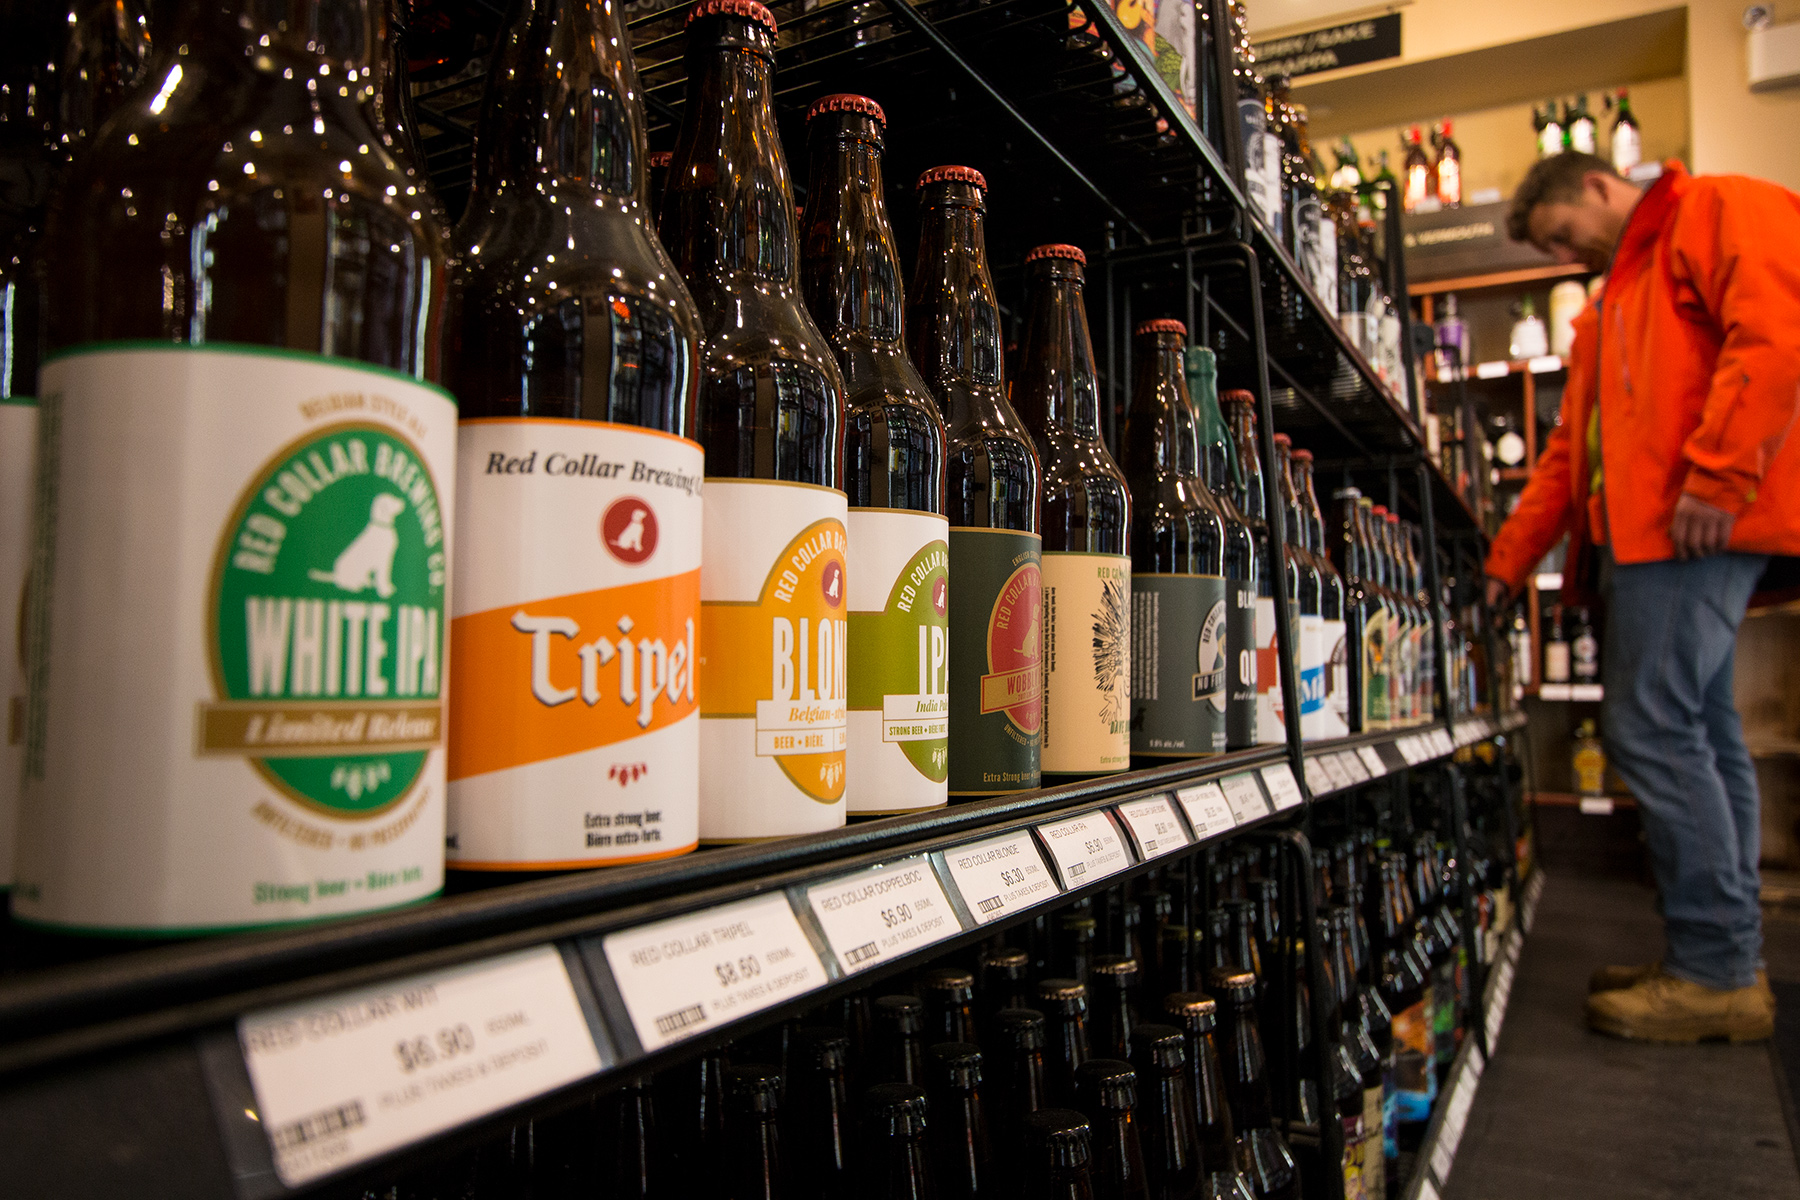 Craft beer at the Sundance Liquor Store